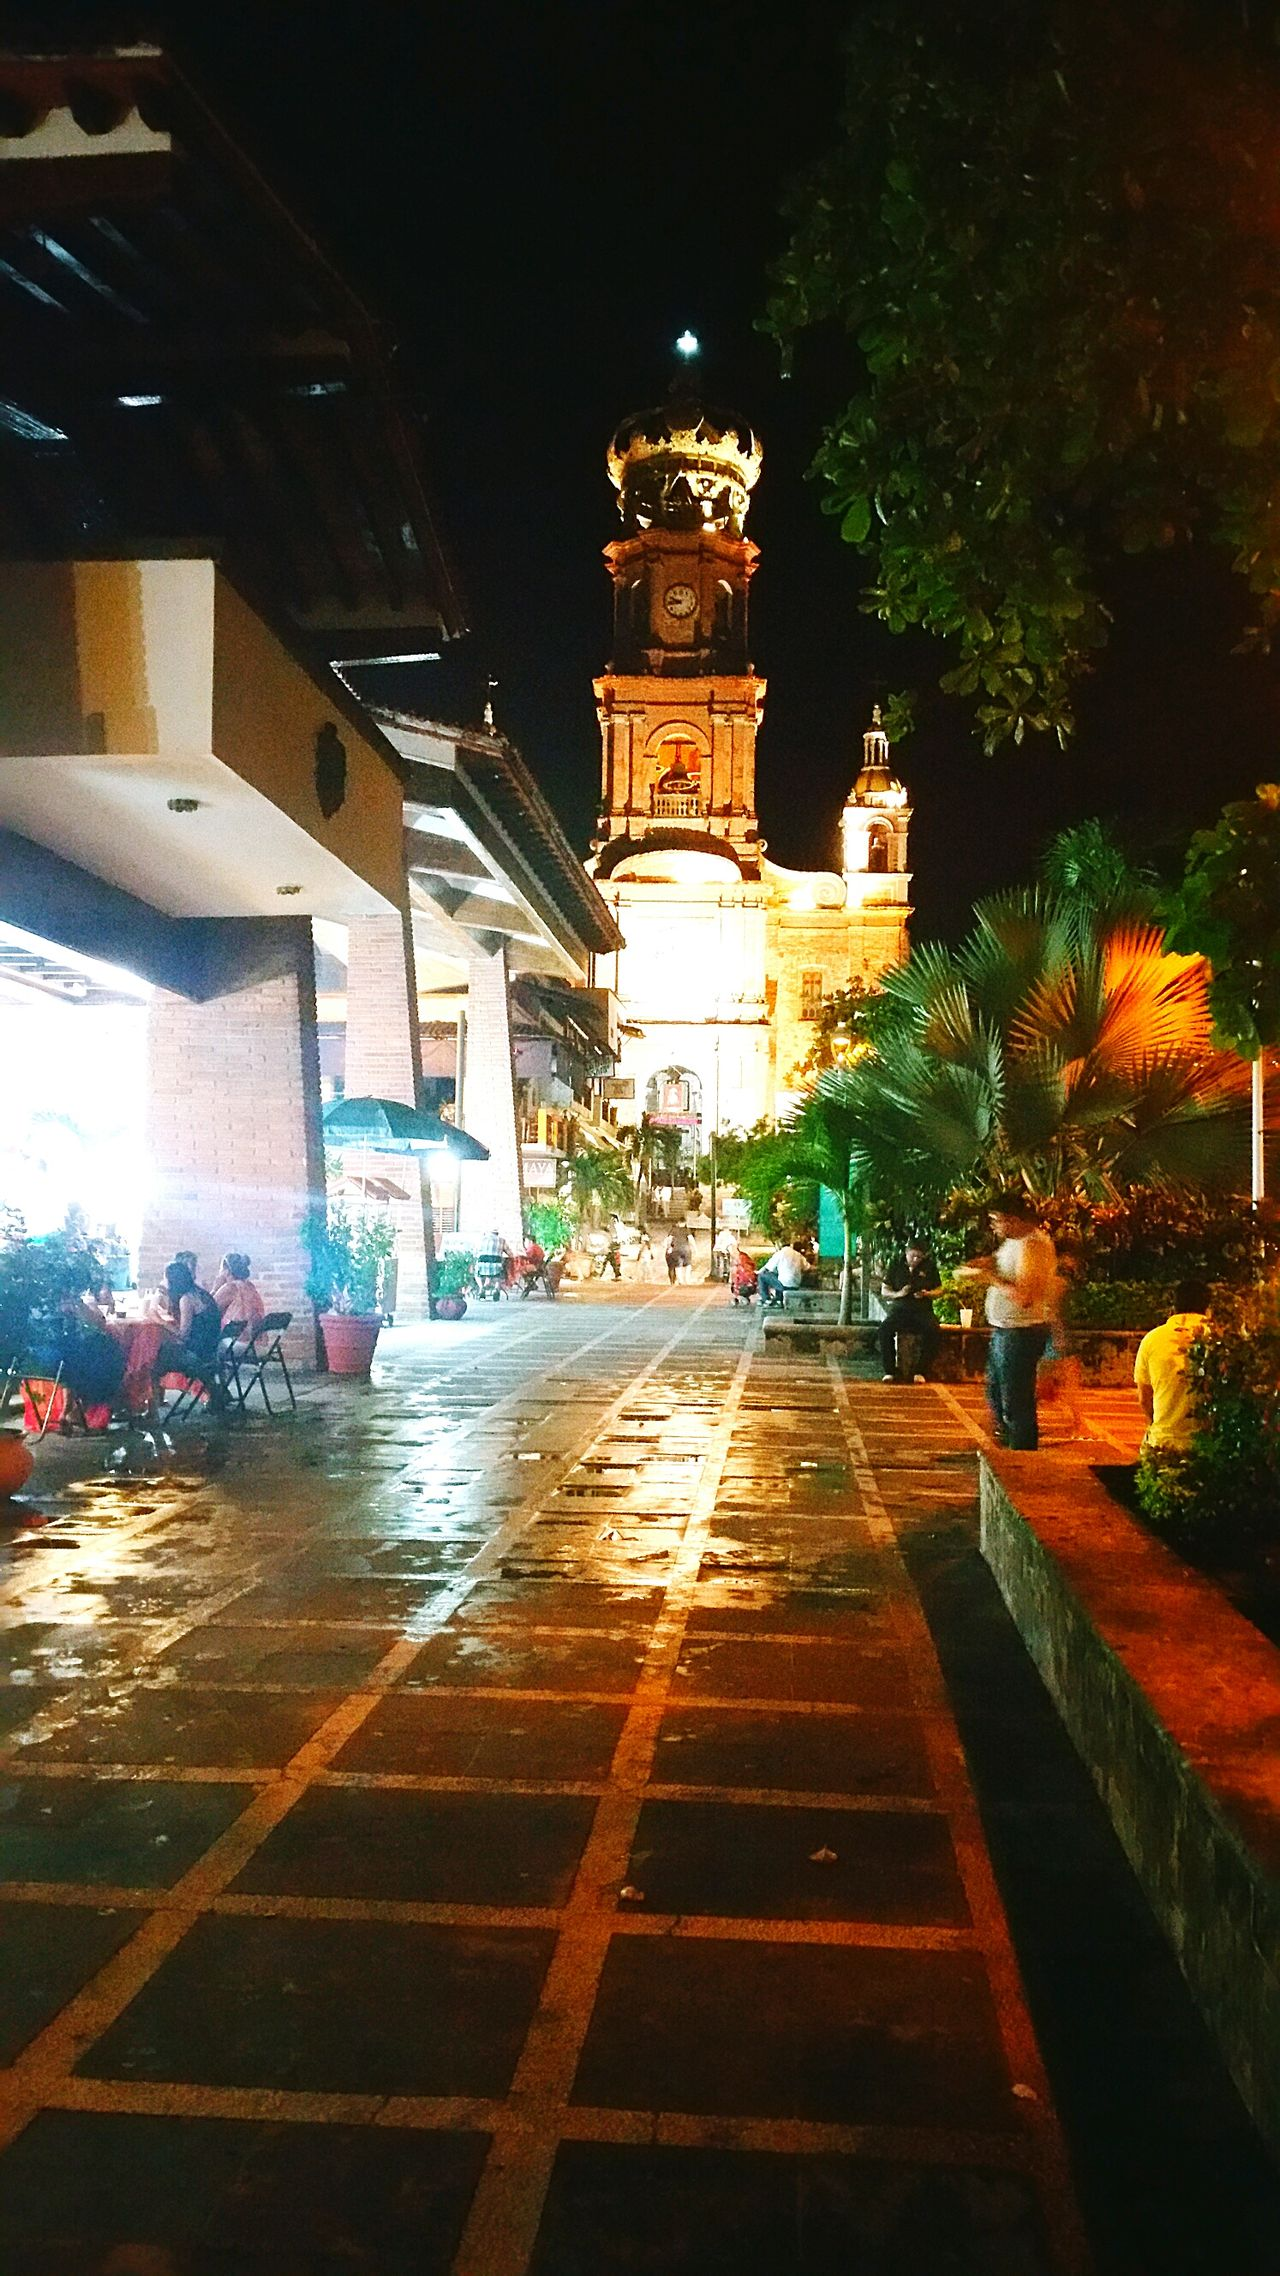 puertovallarta Architecture Puertovallartajalisco Built Structure Place Of Worship Church Travel Destinations Building Exterior Illuminated Outdoors Nuestraseñoradeguadalupechurch